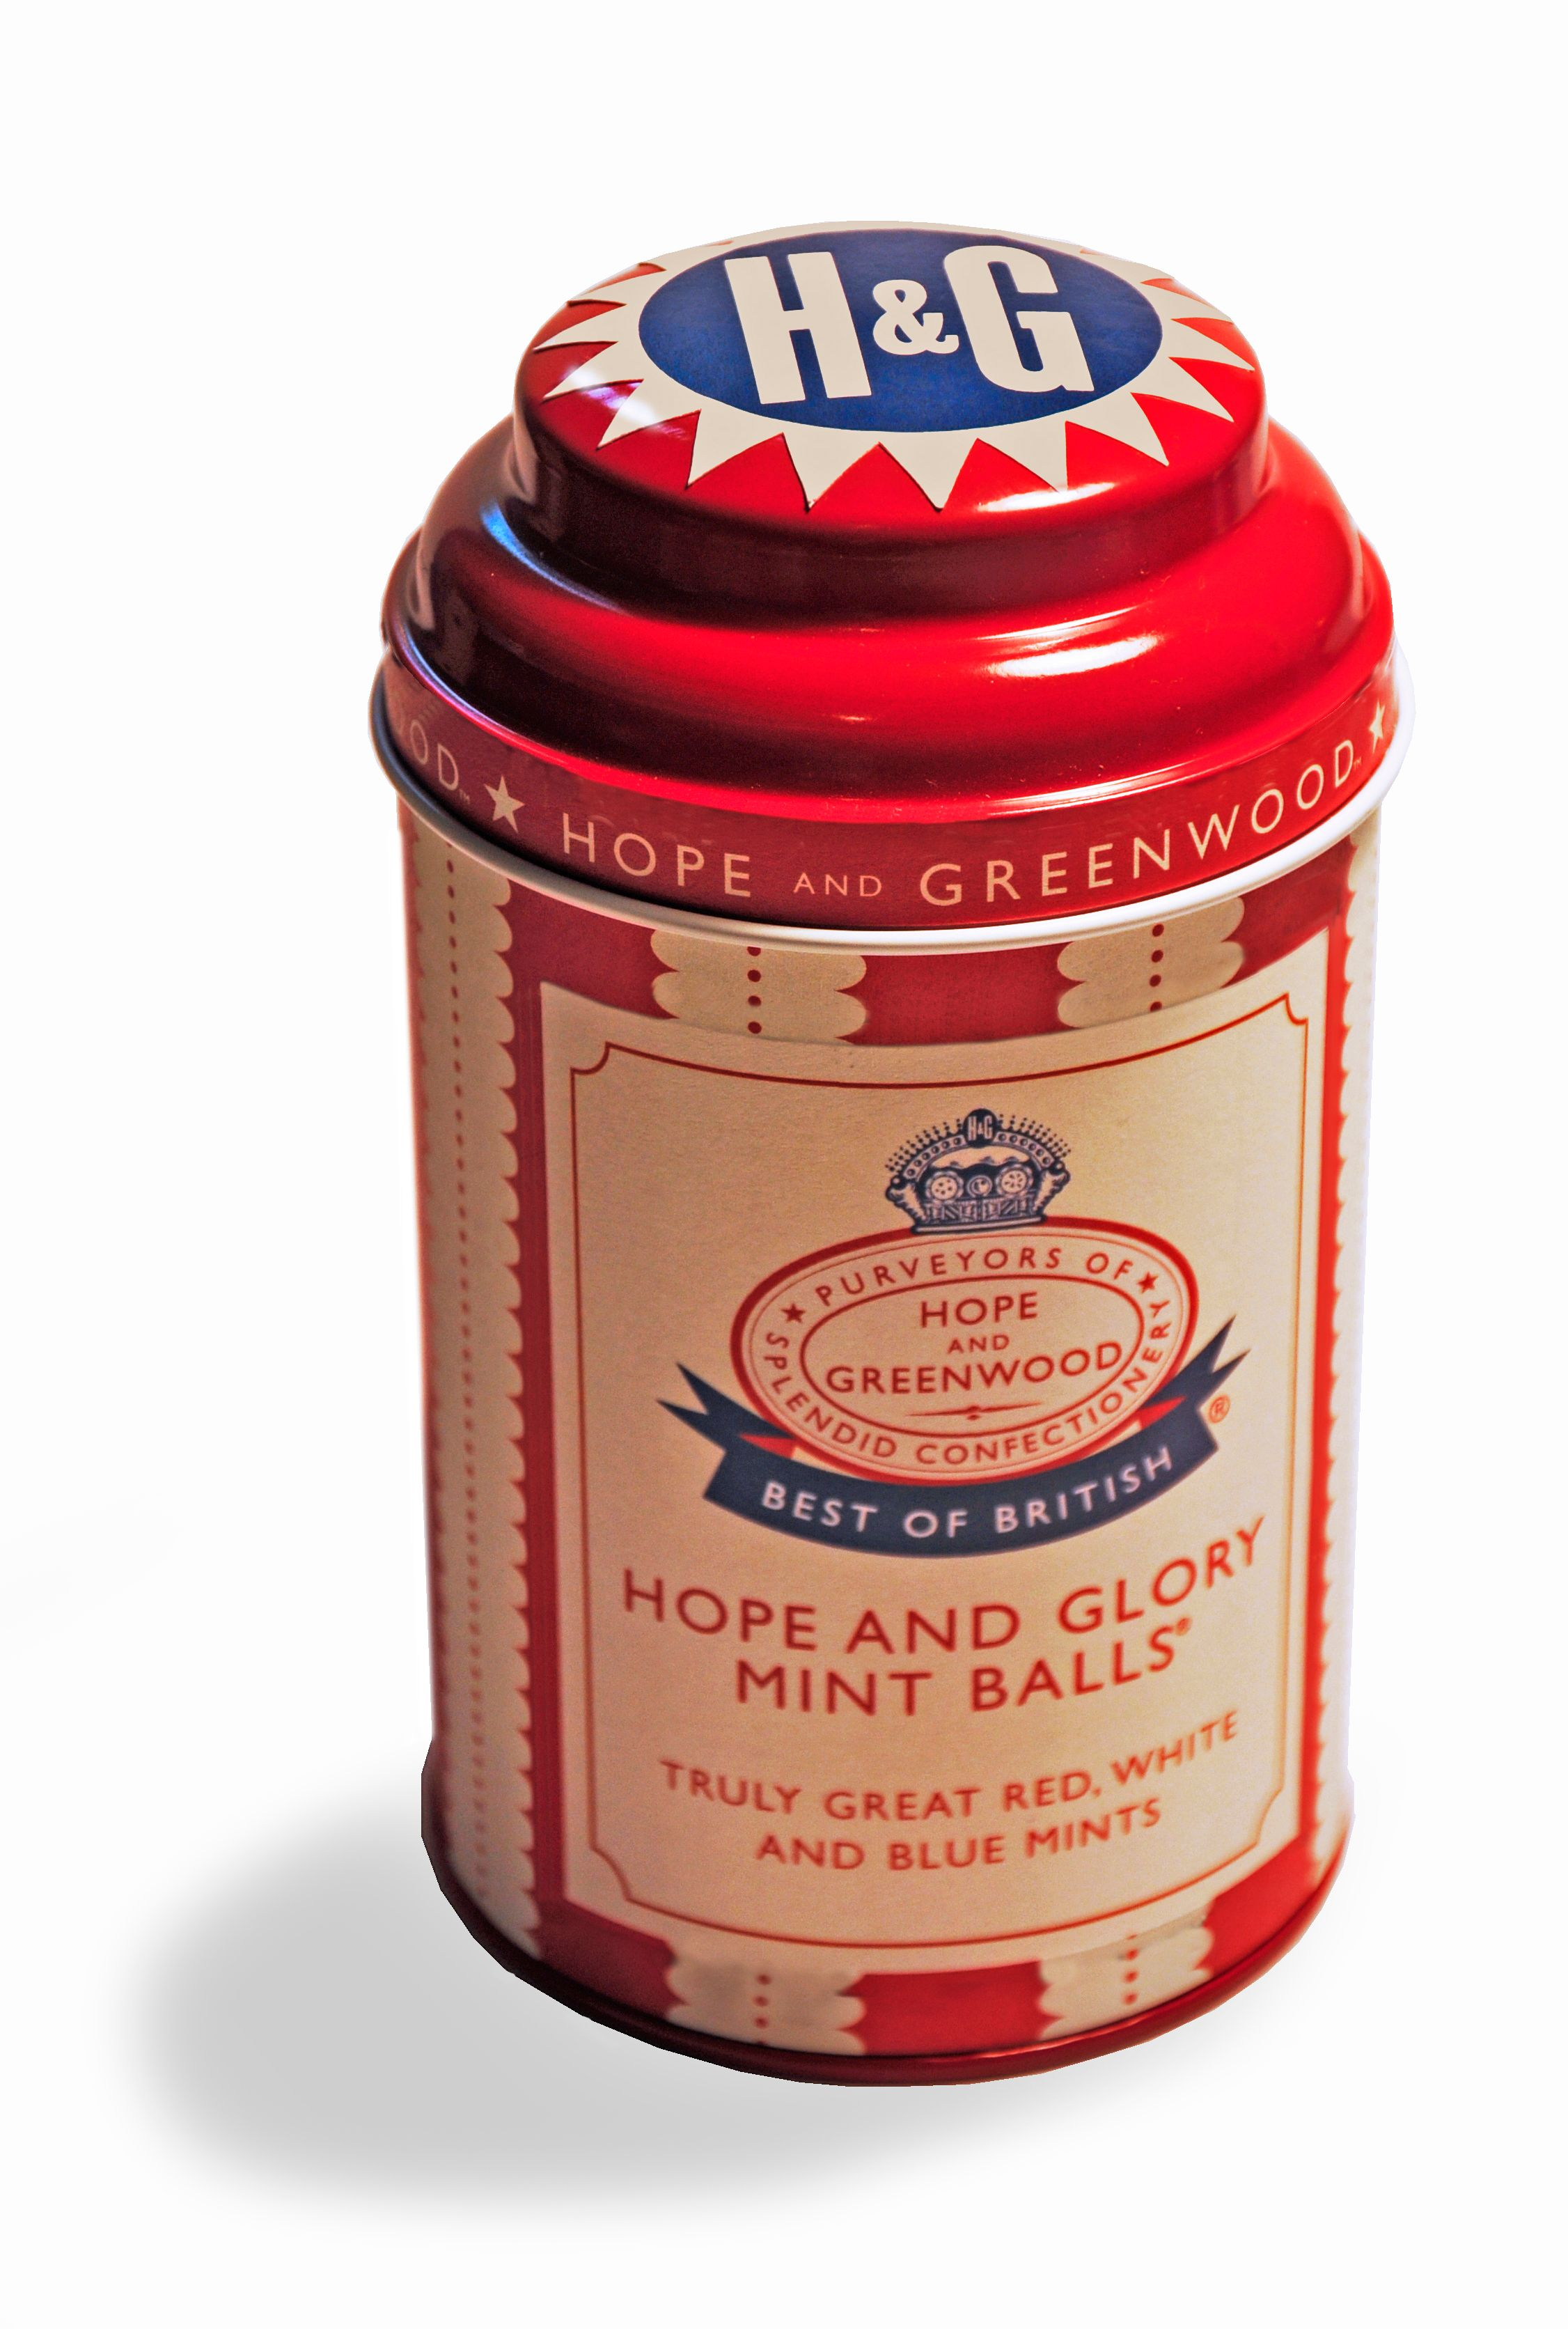 Hope & glory mint balls